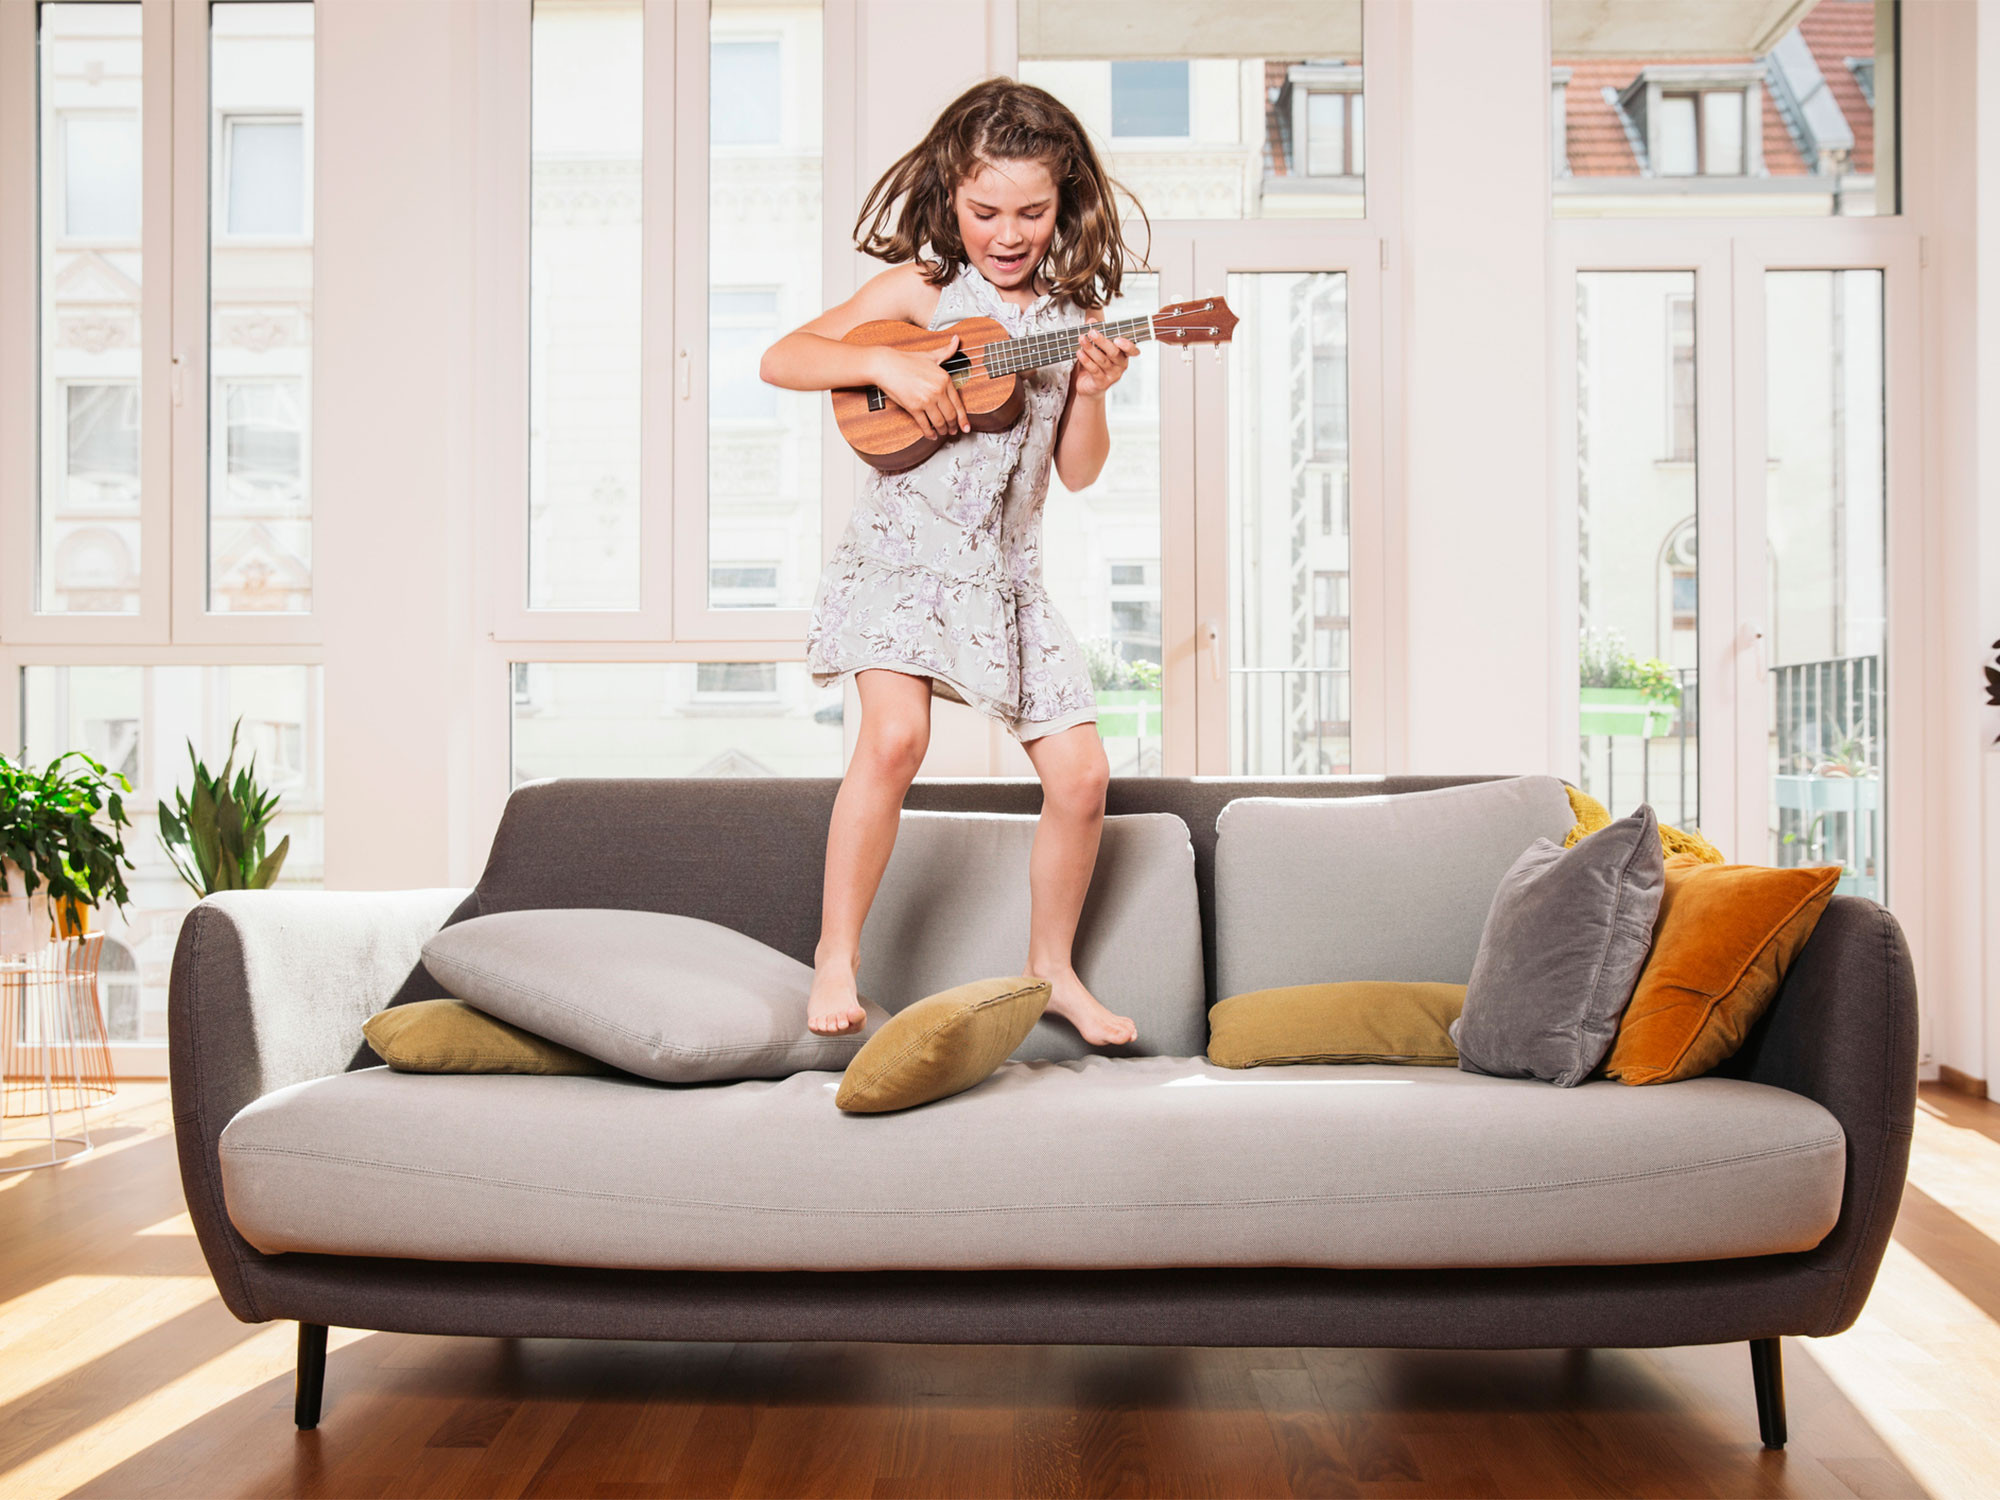 s m hardwood flooring of living in an apartment with kids the pros cons with apartment living kids